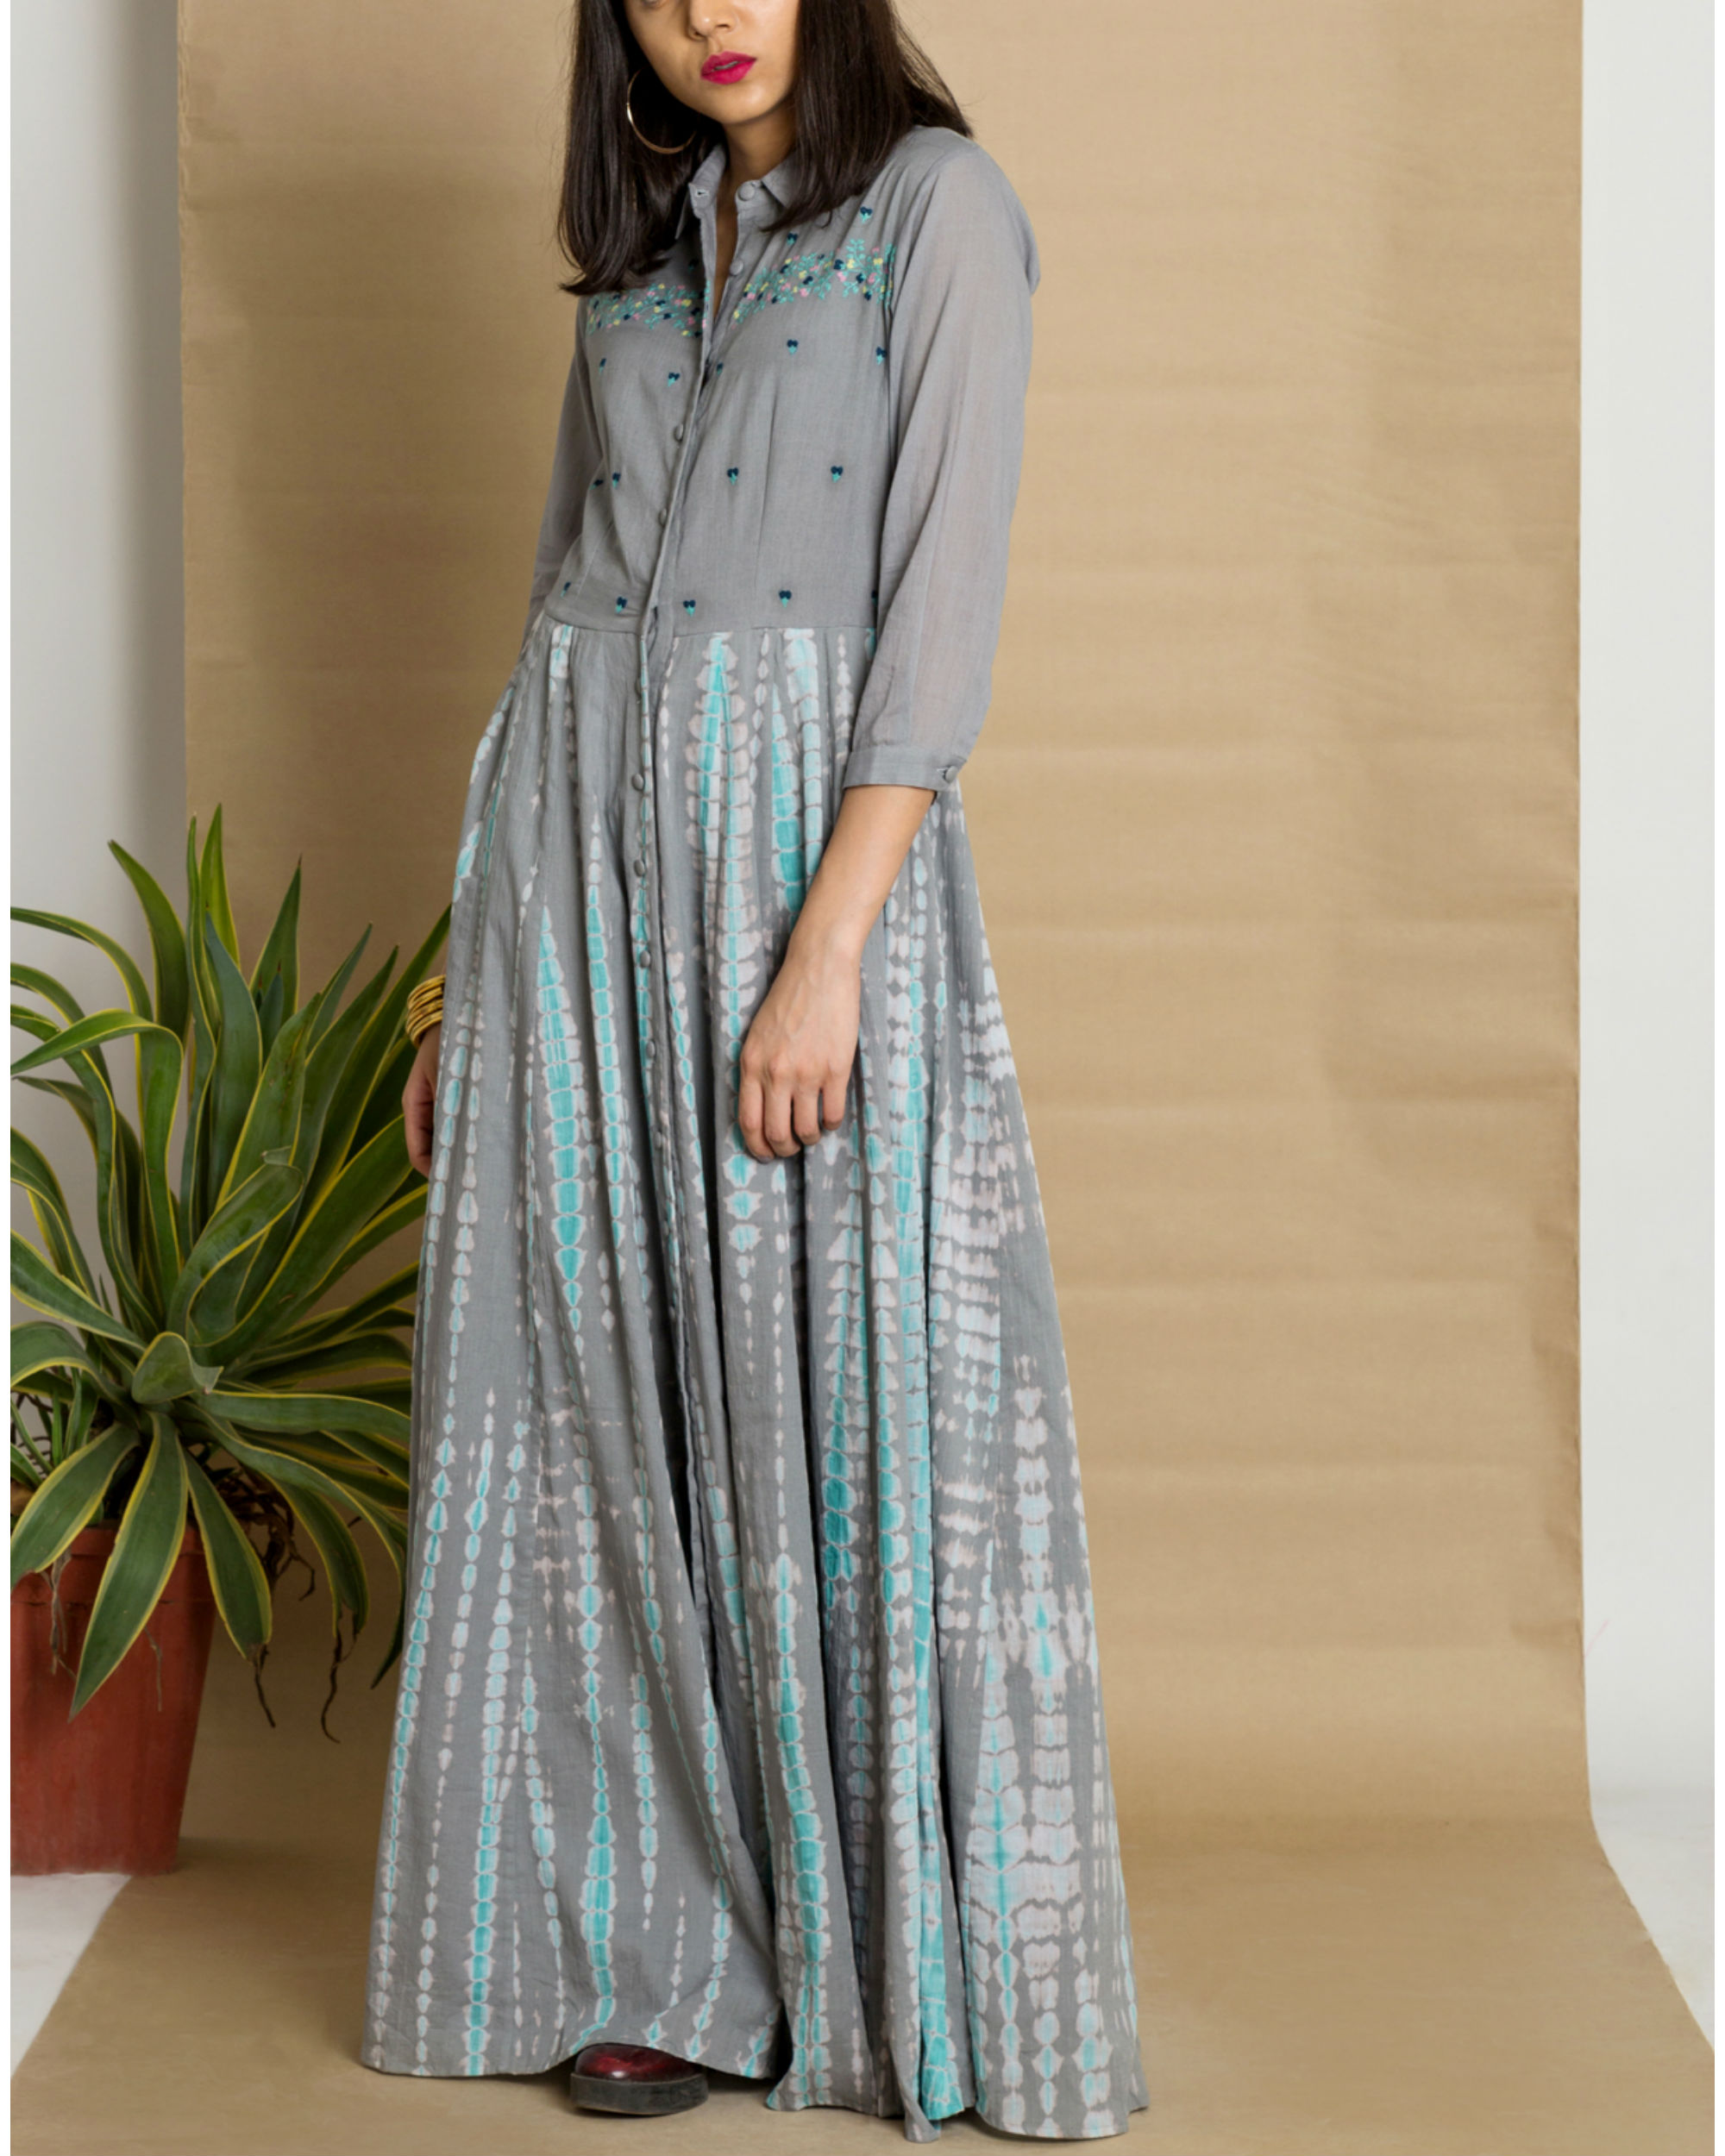 Grey cotton tie and dye maxi dress